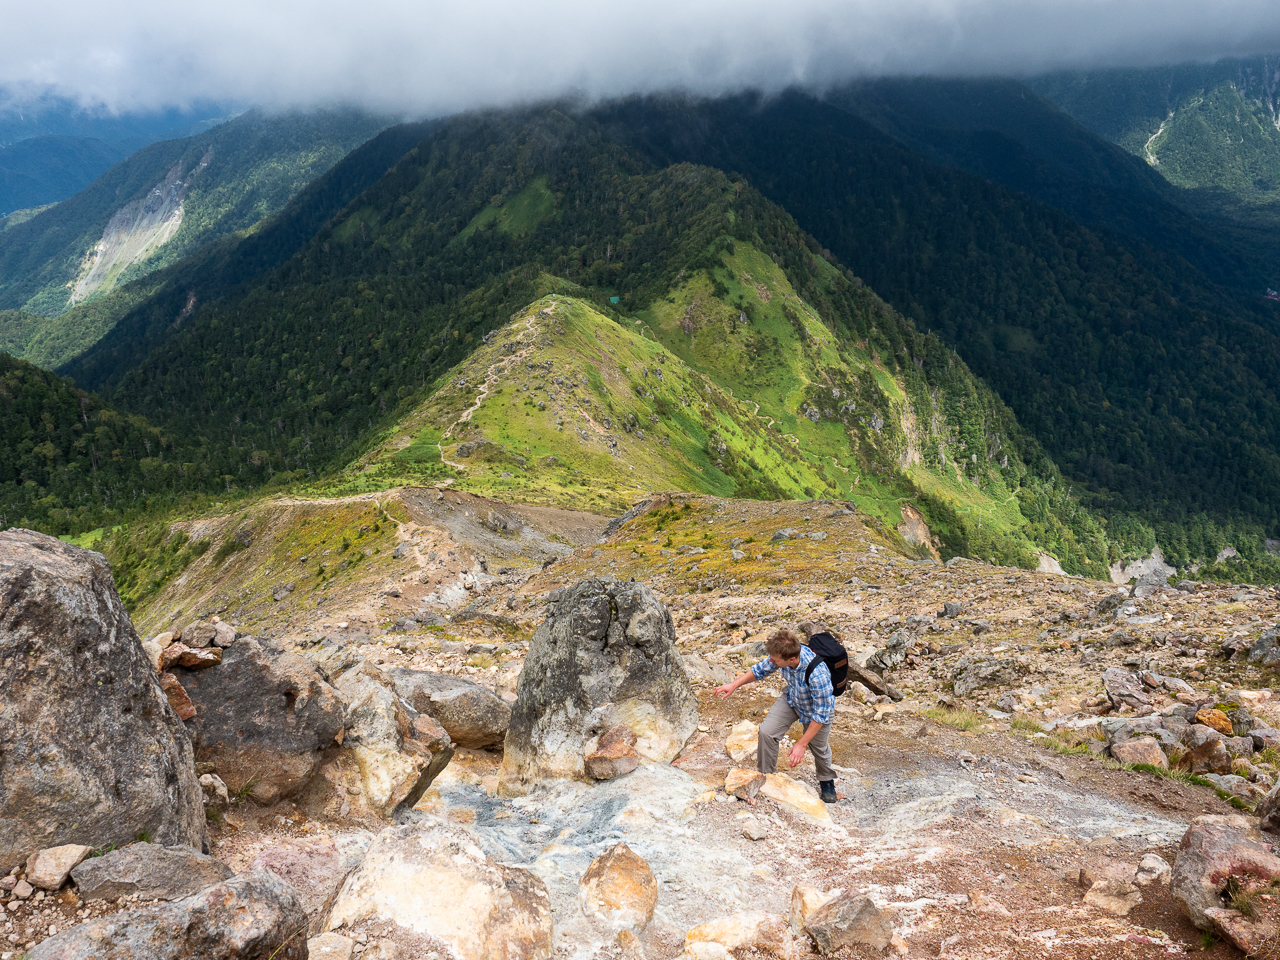 A hiker approaches the summit of Mount Yake, a volcano in Kamikōchi (the Upper Highlands) in the Hida Mountains, Nagano Prefecture, Japan.